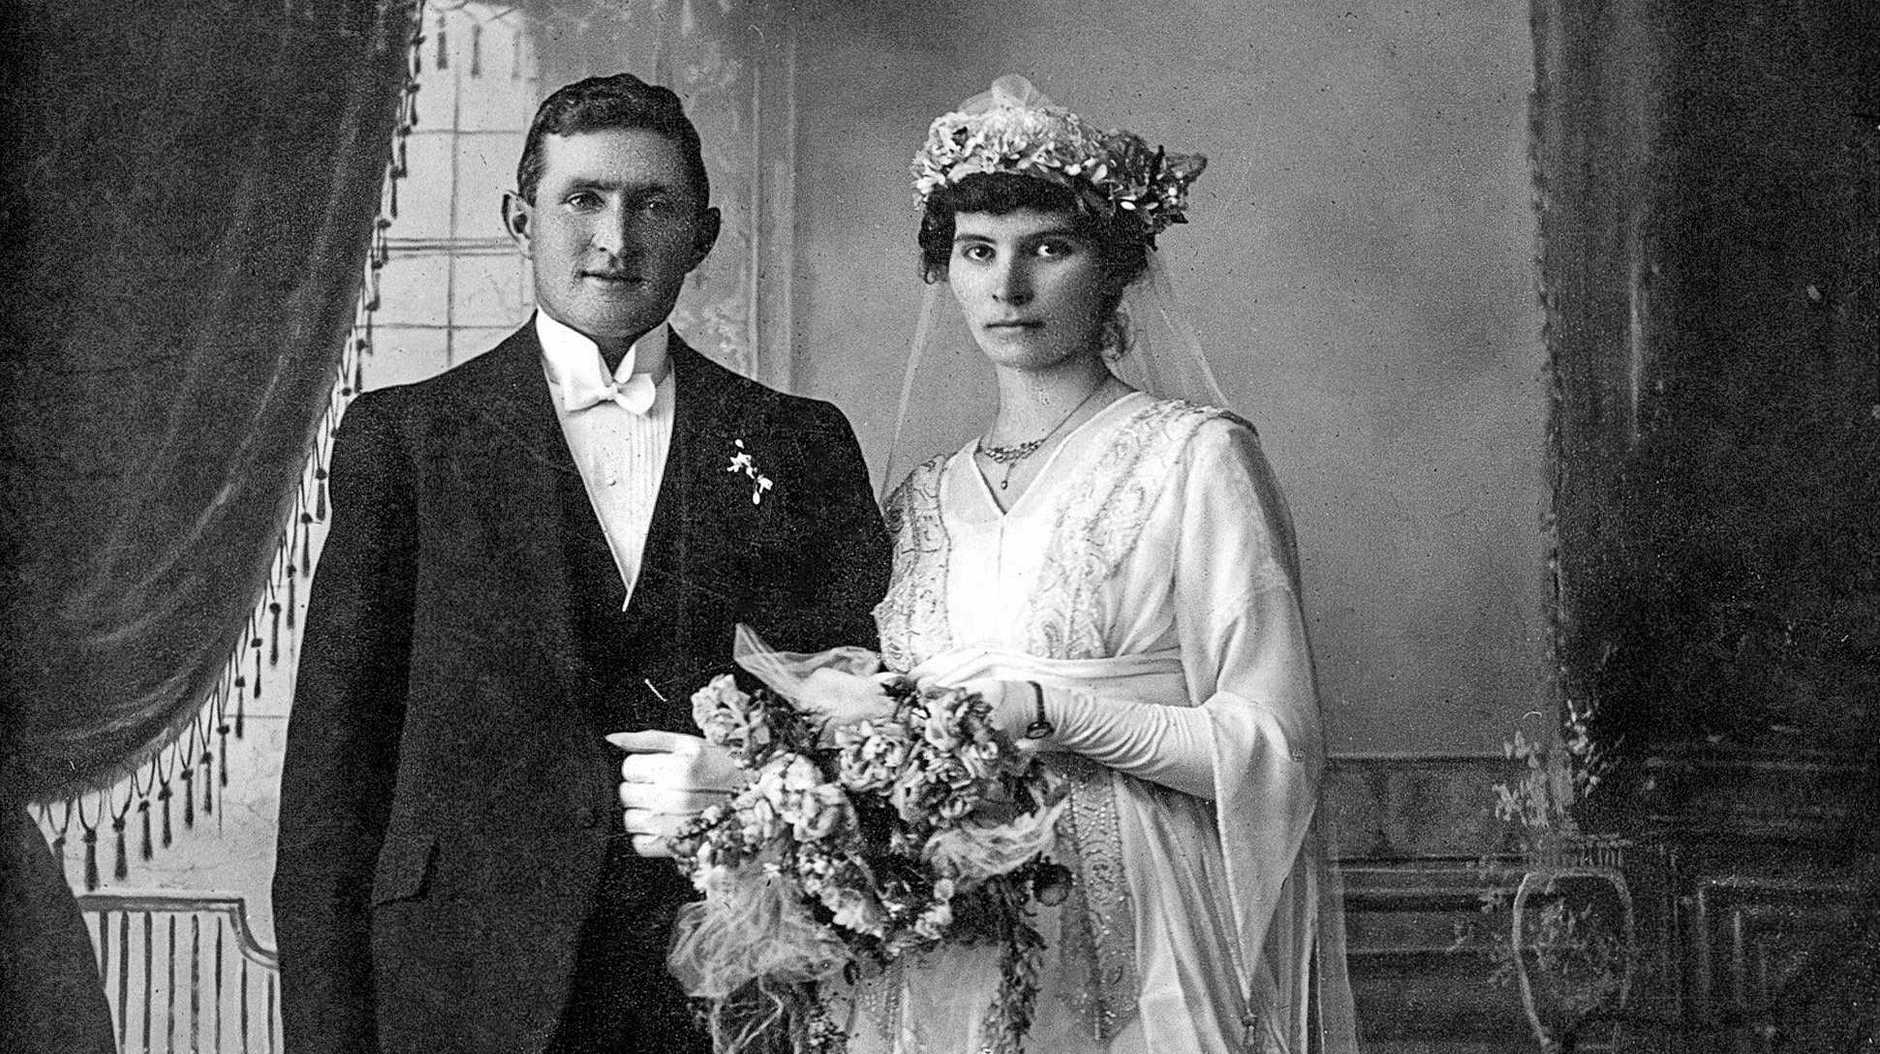 NUPTIALS: Michael McCormack and Johanna Bertoli married at Woodburn on August 27, 1919.